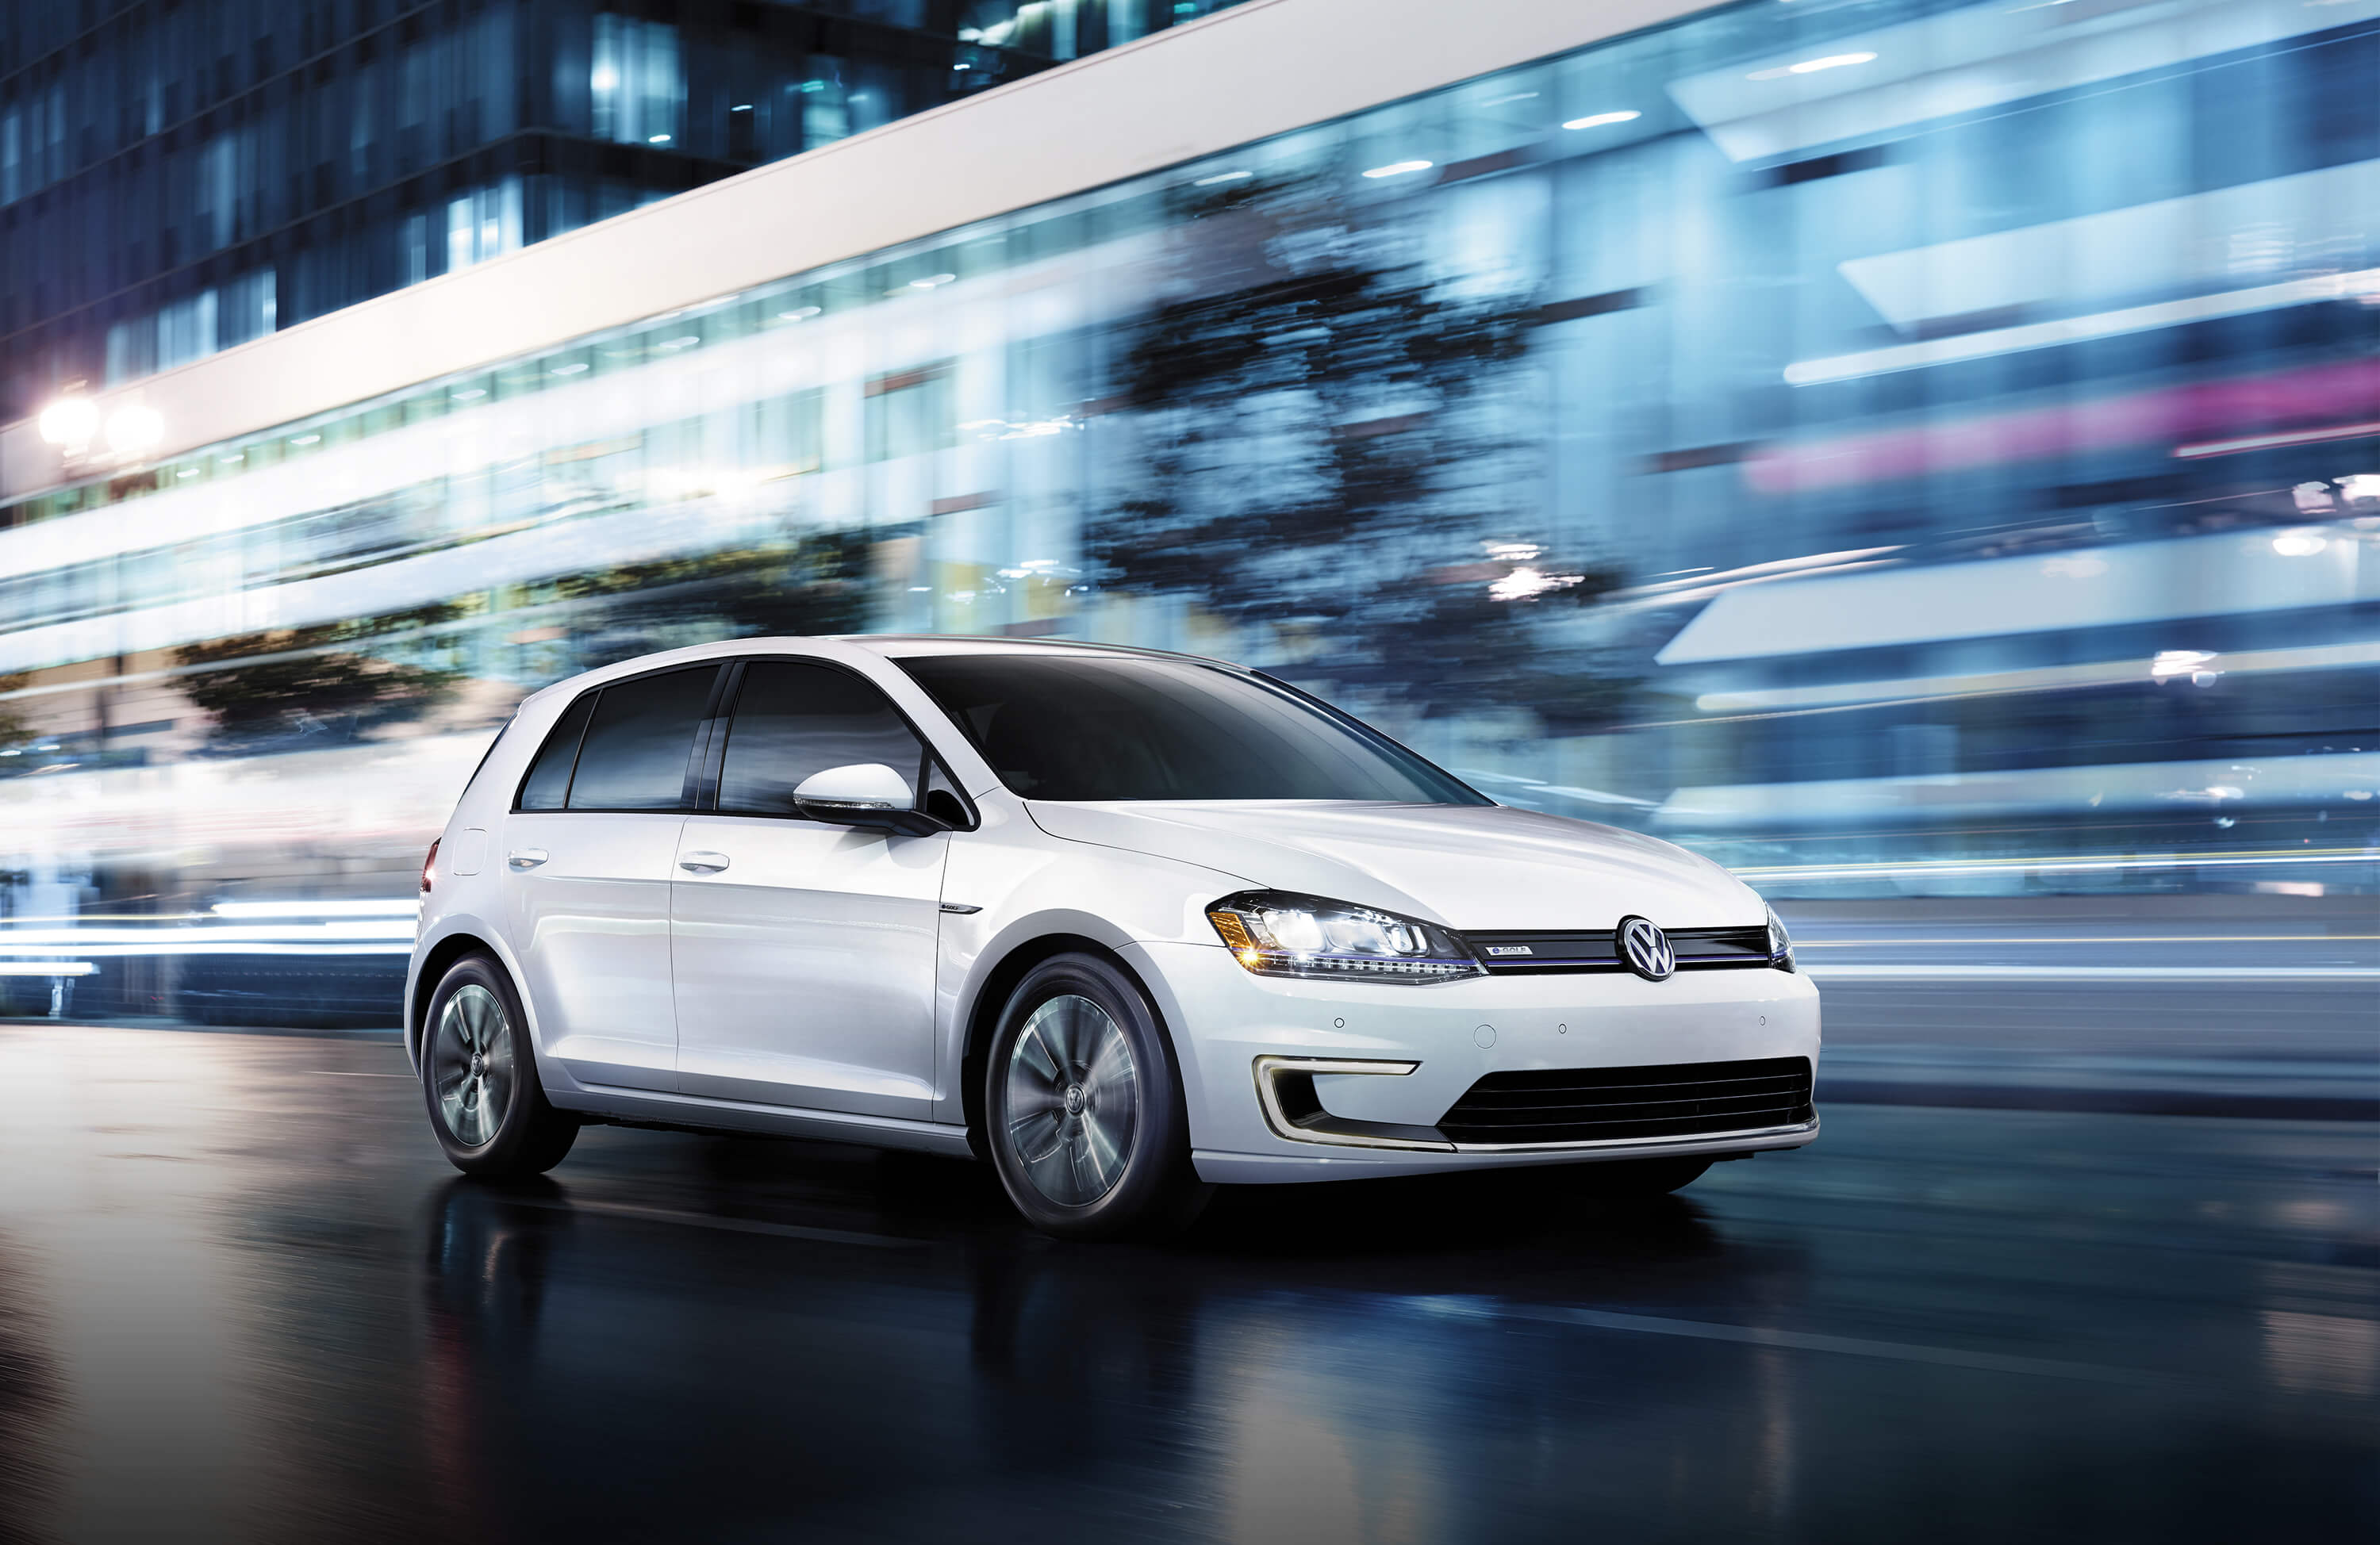 new golf volkswagen lease main and gti offers deals exterior nm image original albuquerque finance specials vw